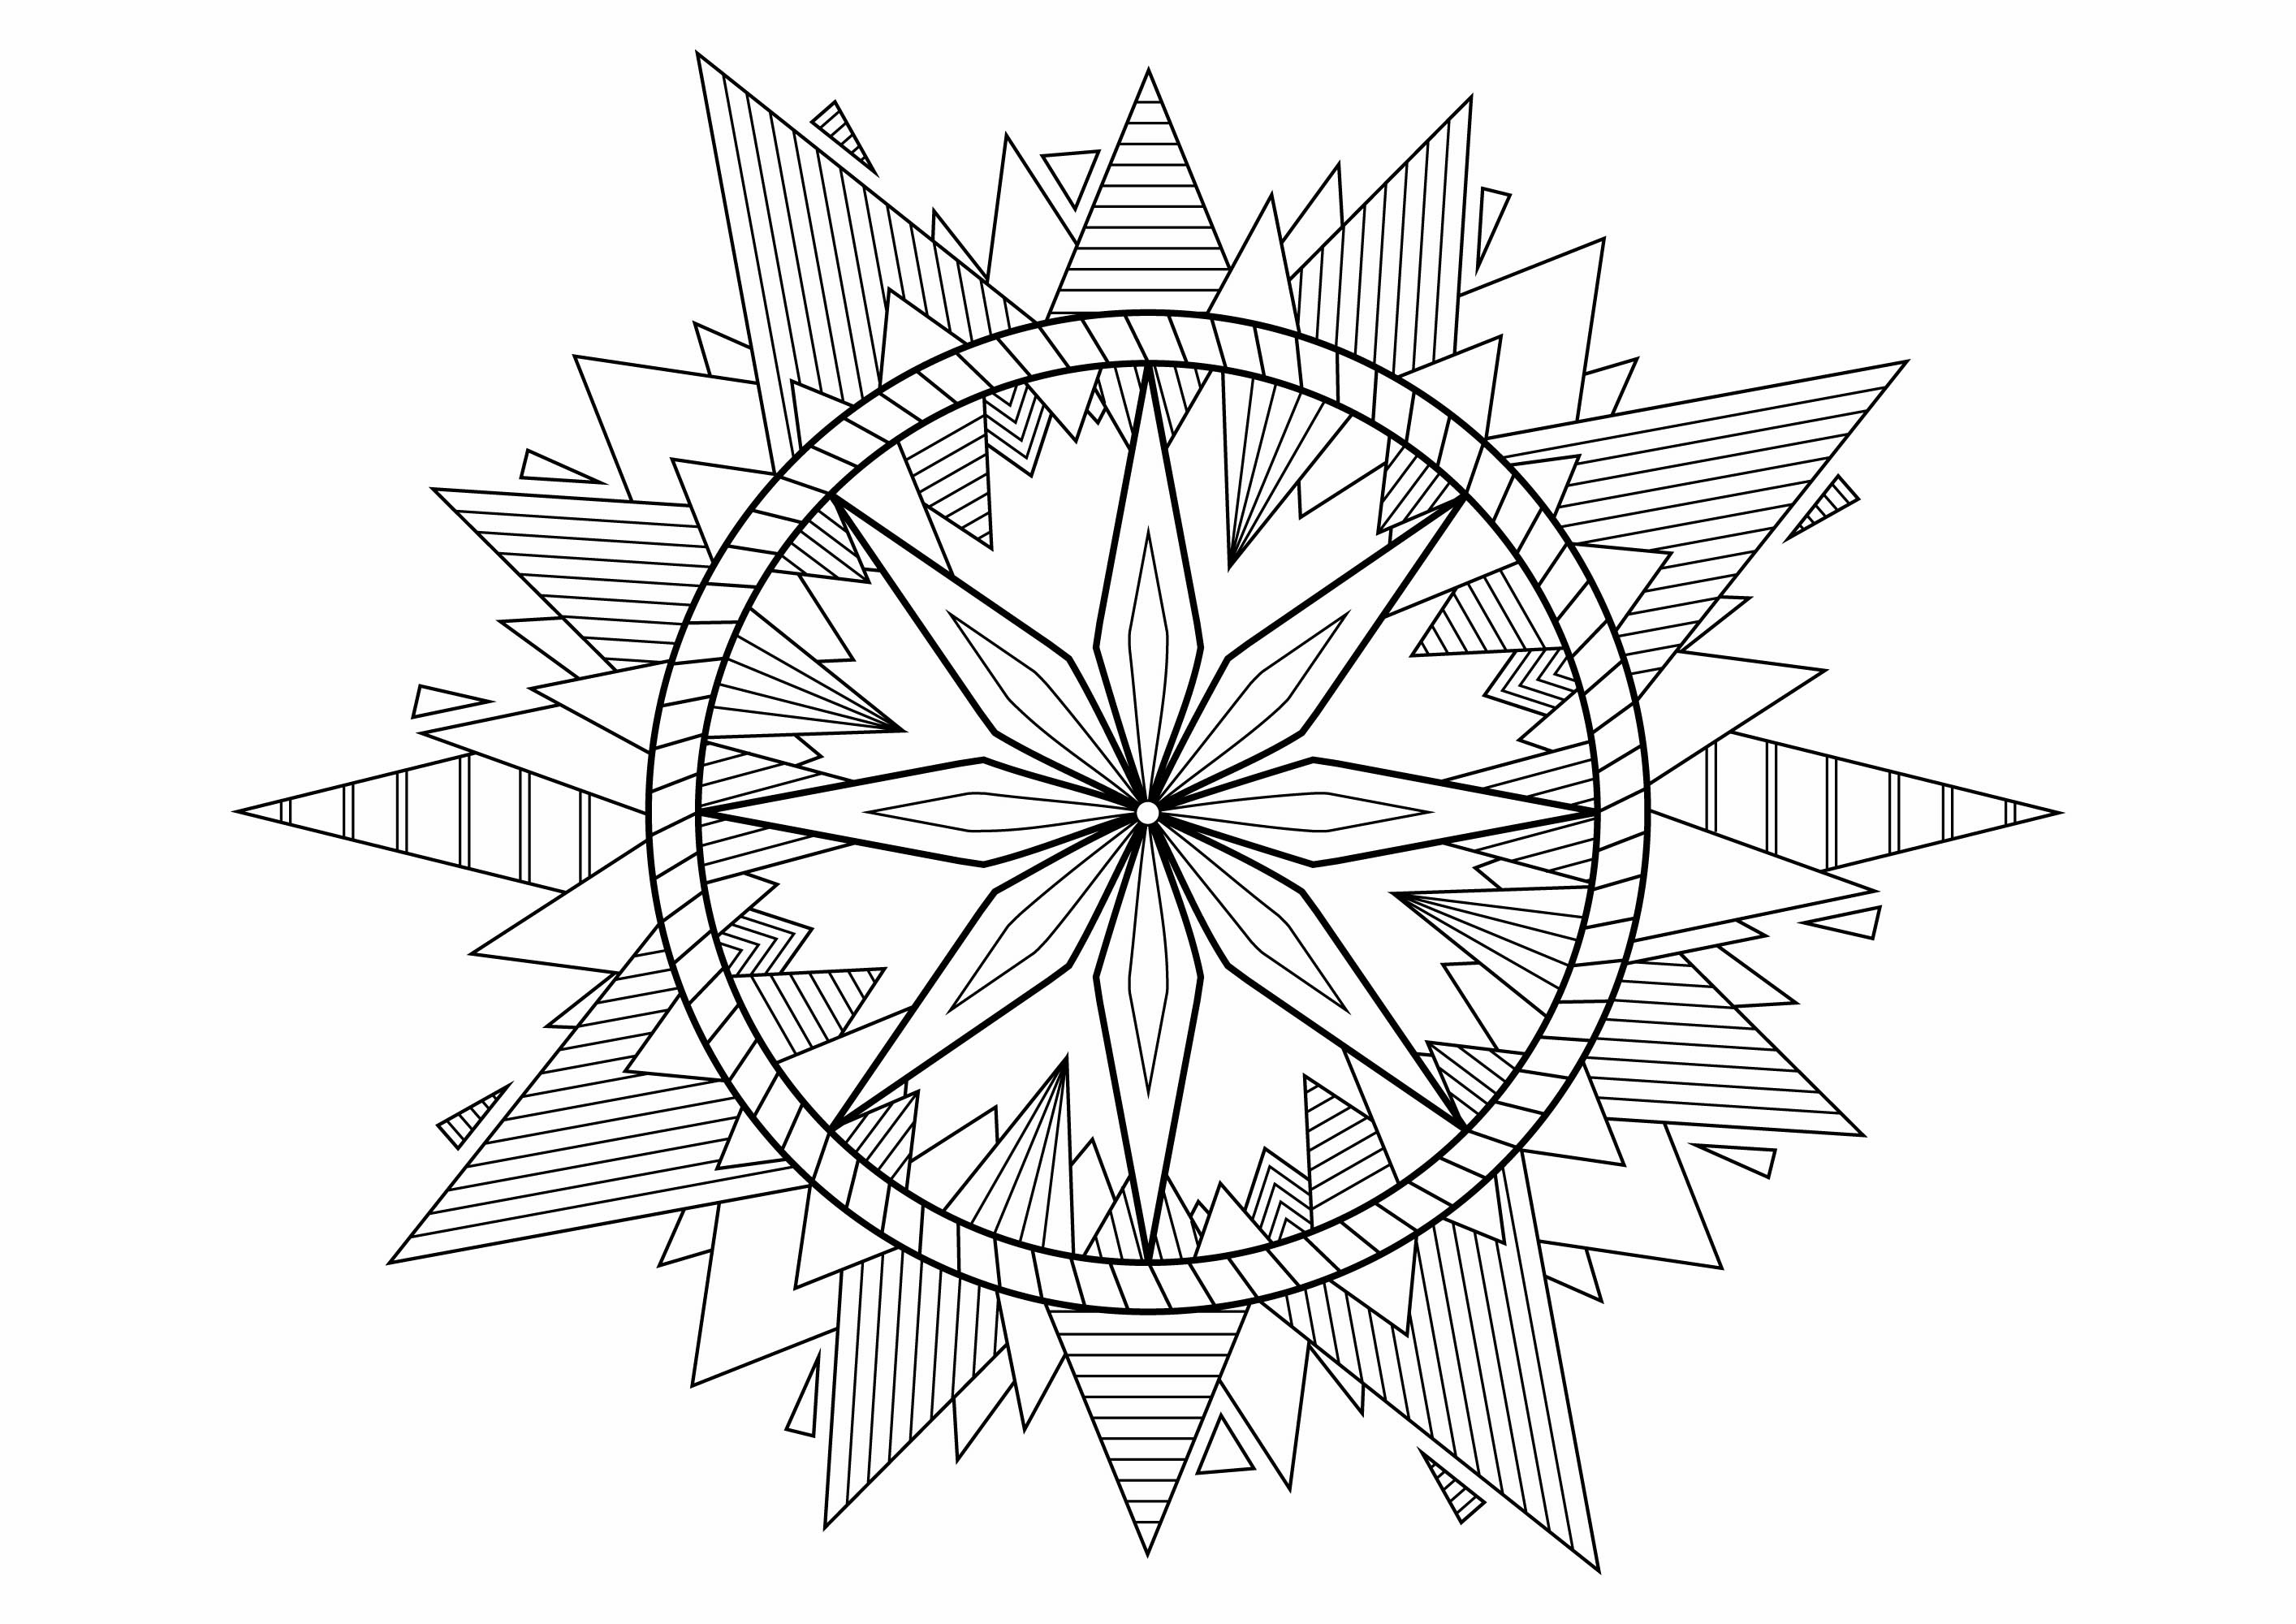 Color this cute Mandala with pretty spikes full of beautiful patterns to color